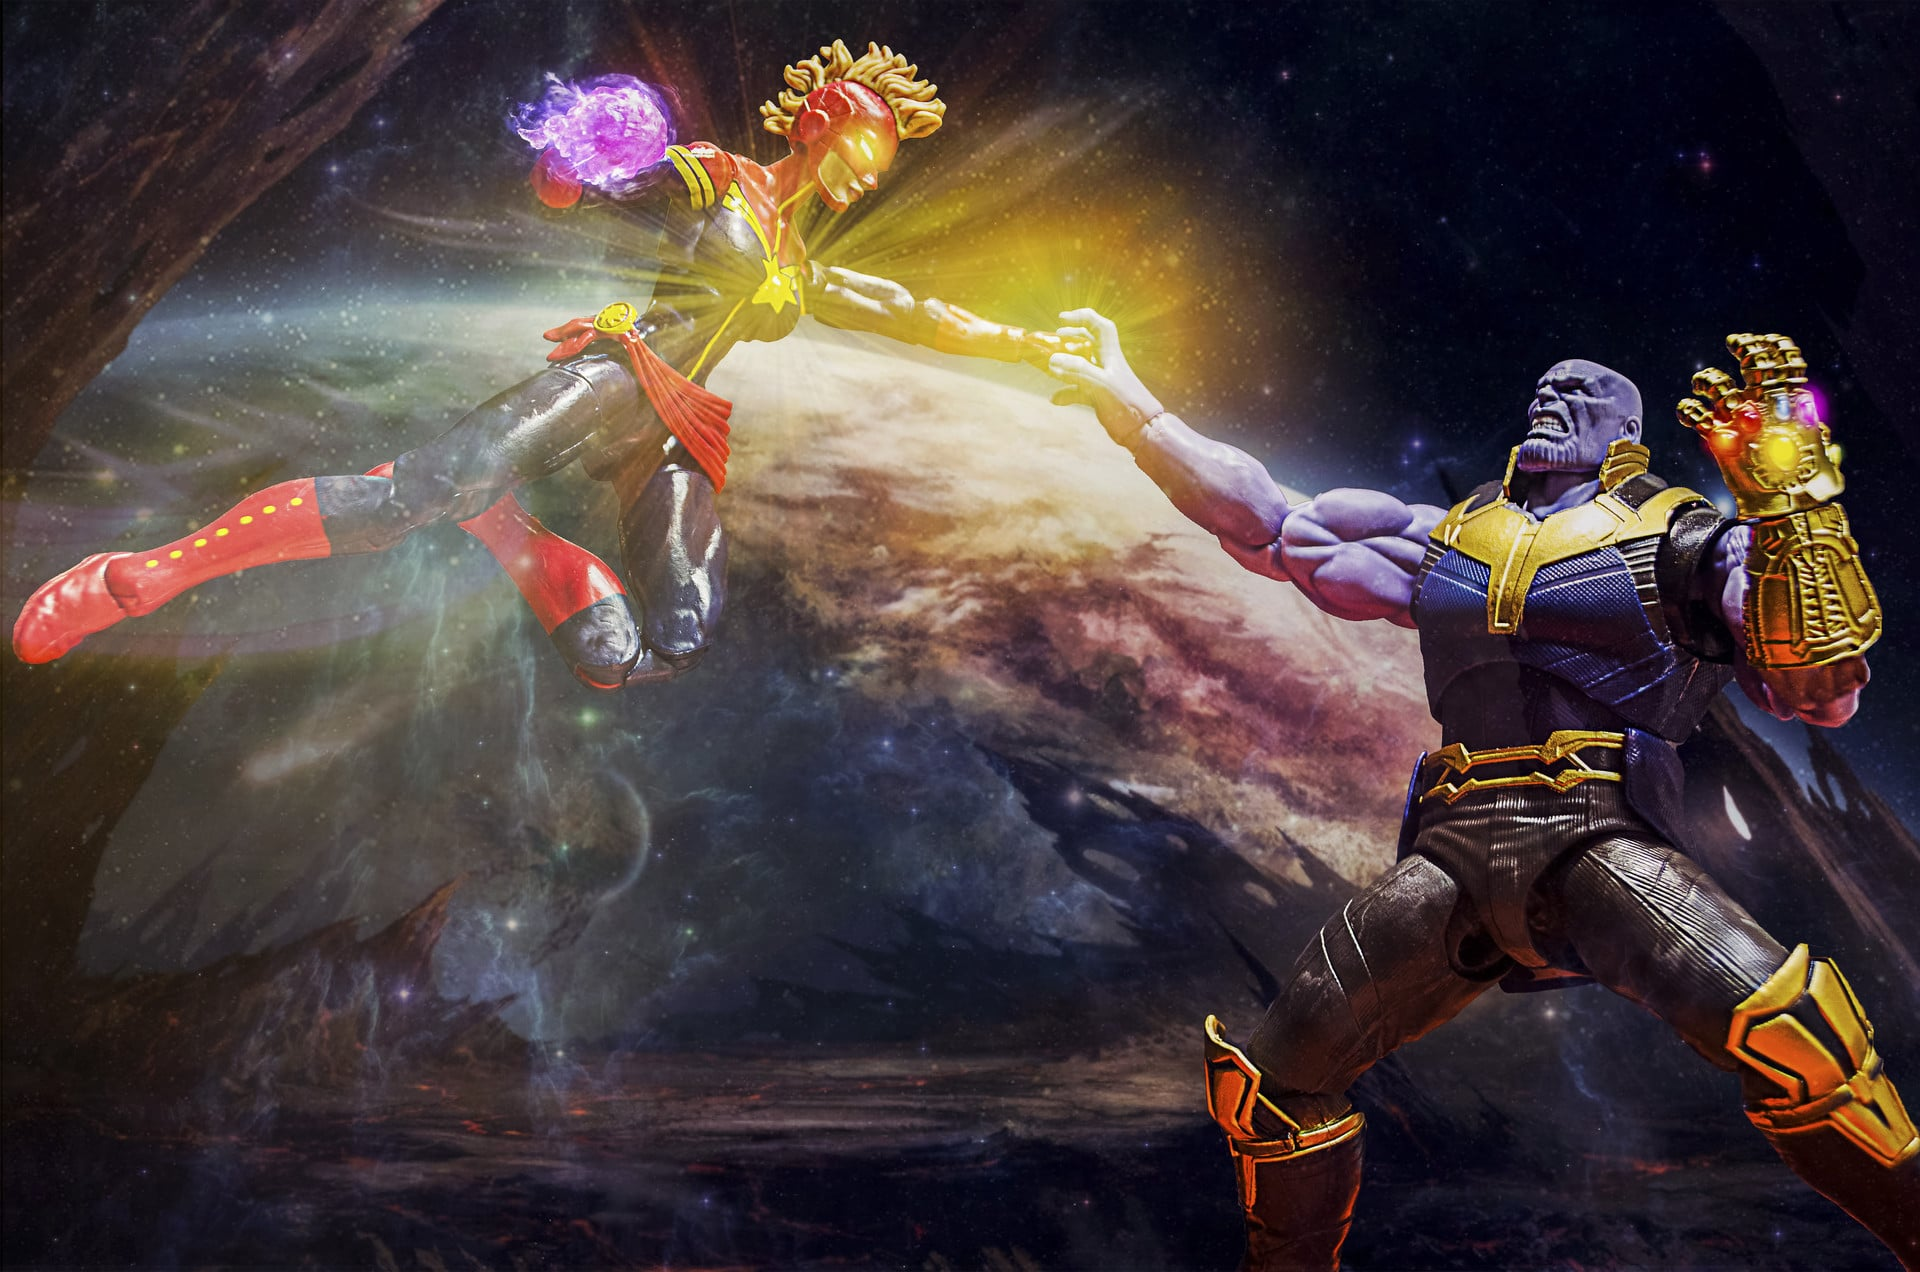 Thanos proved himself to be the most powerful Marvel Cinematic